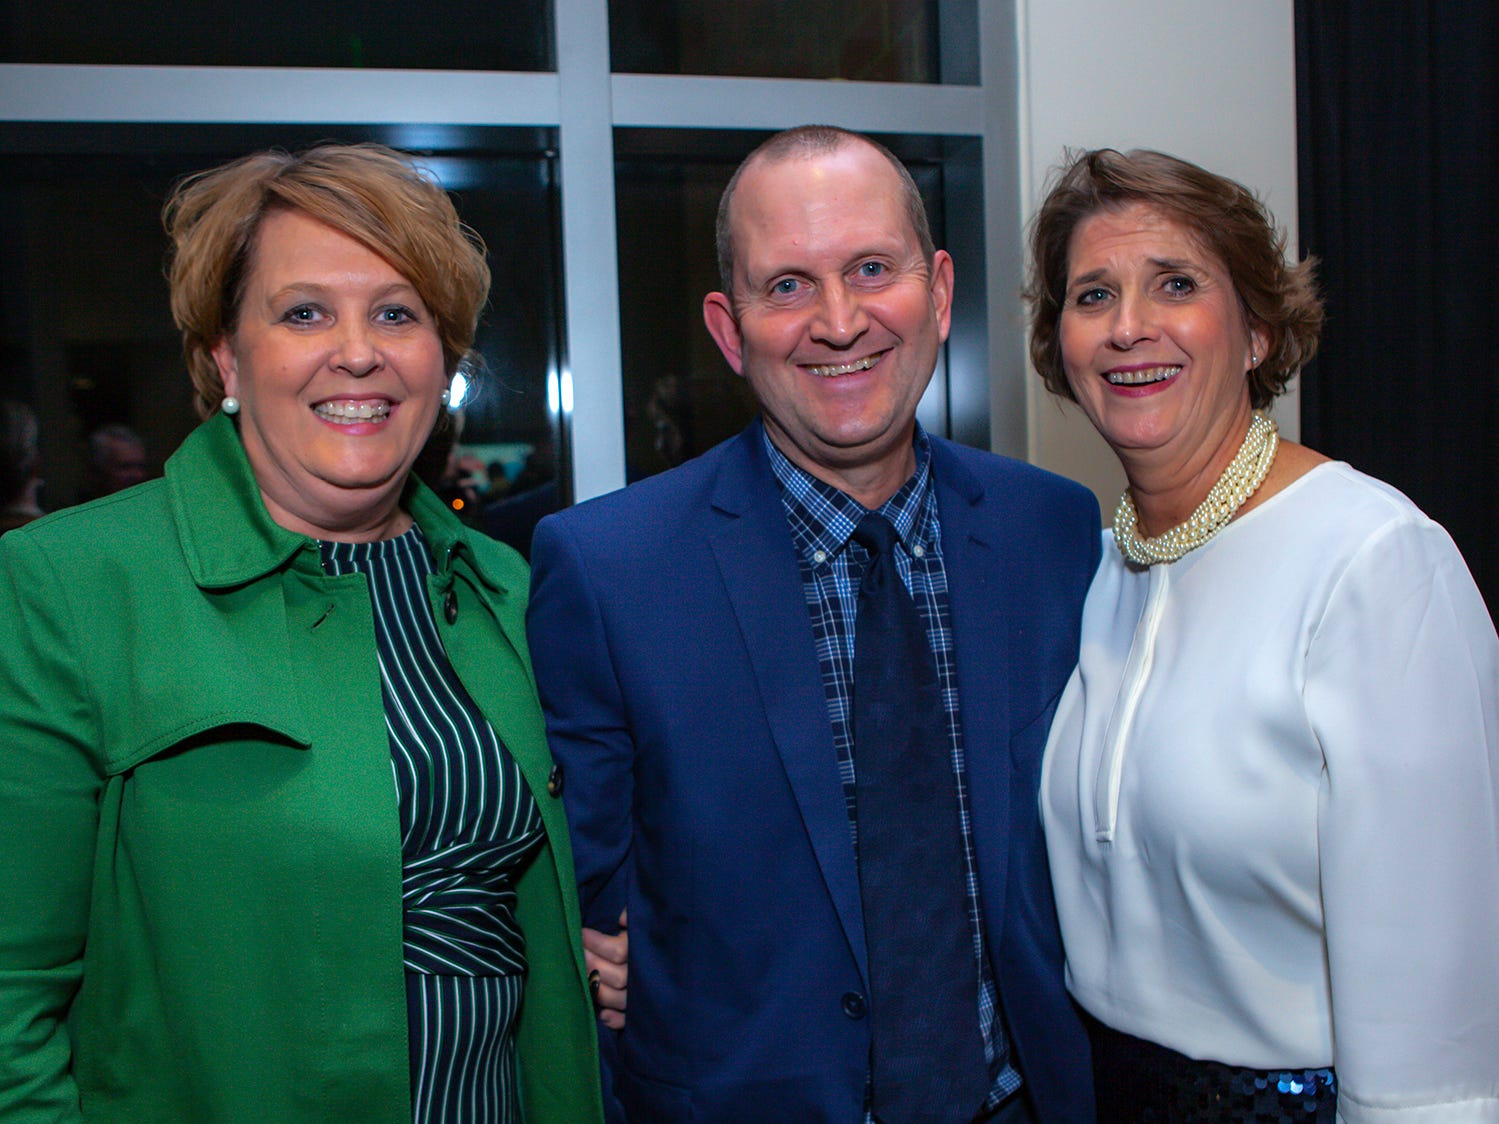 Sheri and Paul Arnette with Kim Frank at the 2019 Excellence in Education Gala, hosted by the City Schools Foundation on Friday, Jan. 25, 2019 at Stones River Country Club in Murfreesboro.